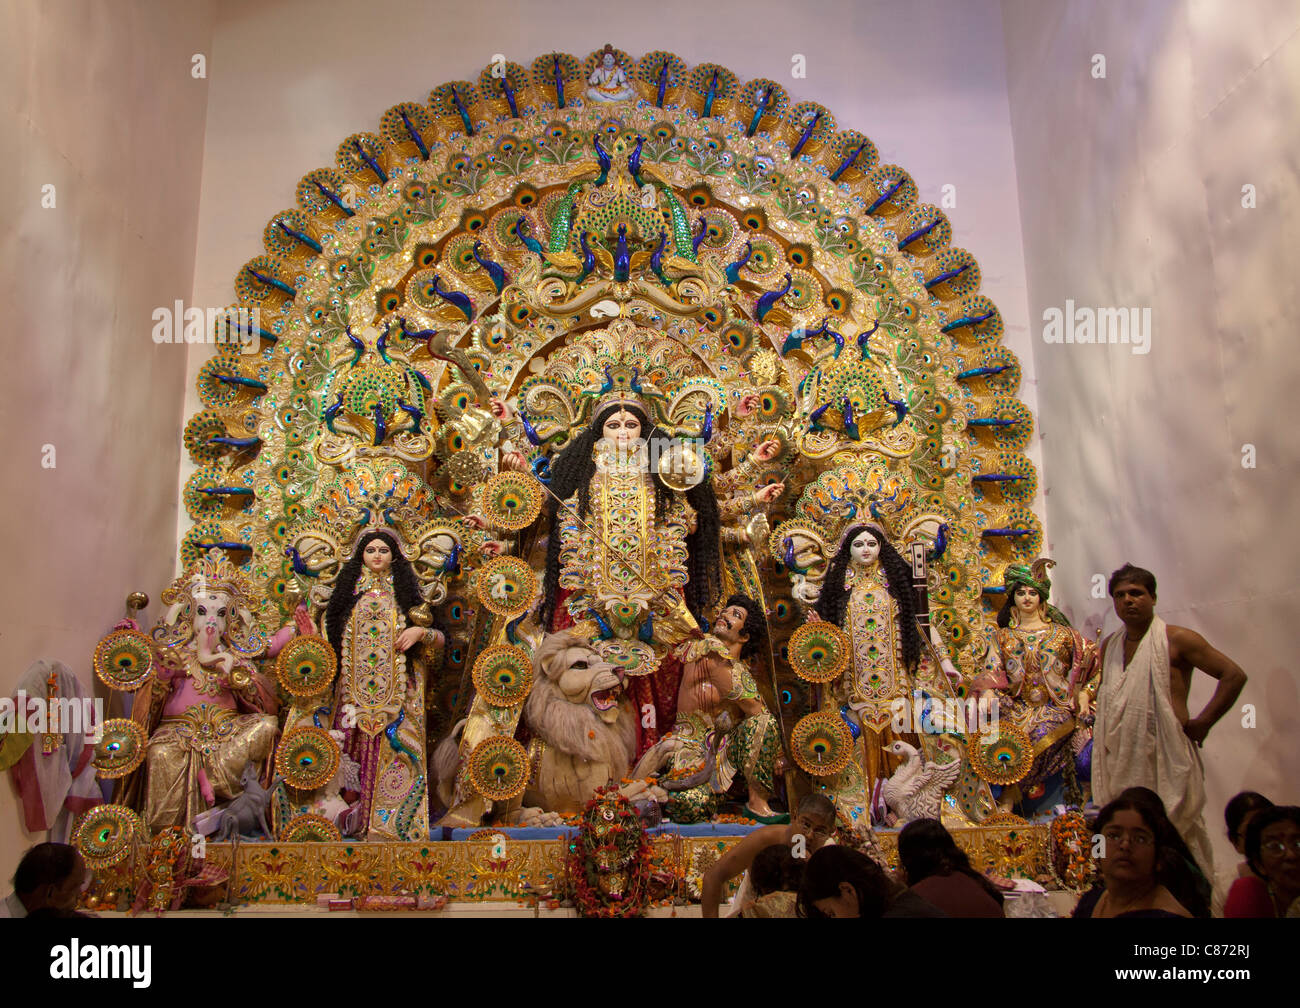 Intricately decorated depiction of Goddess Durga at 'Mudiali Club Puja pandal' in Kolkata (Calcutta), West - Stock Image